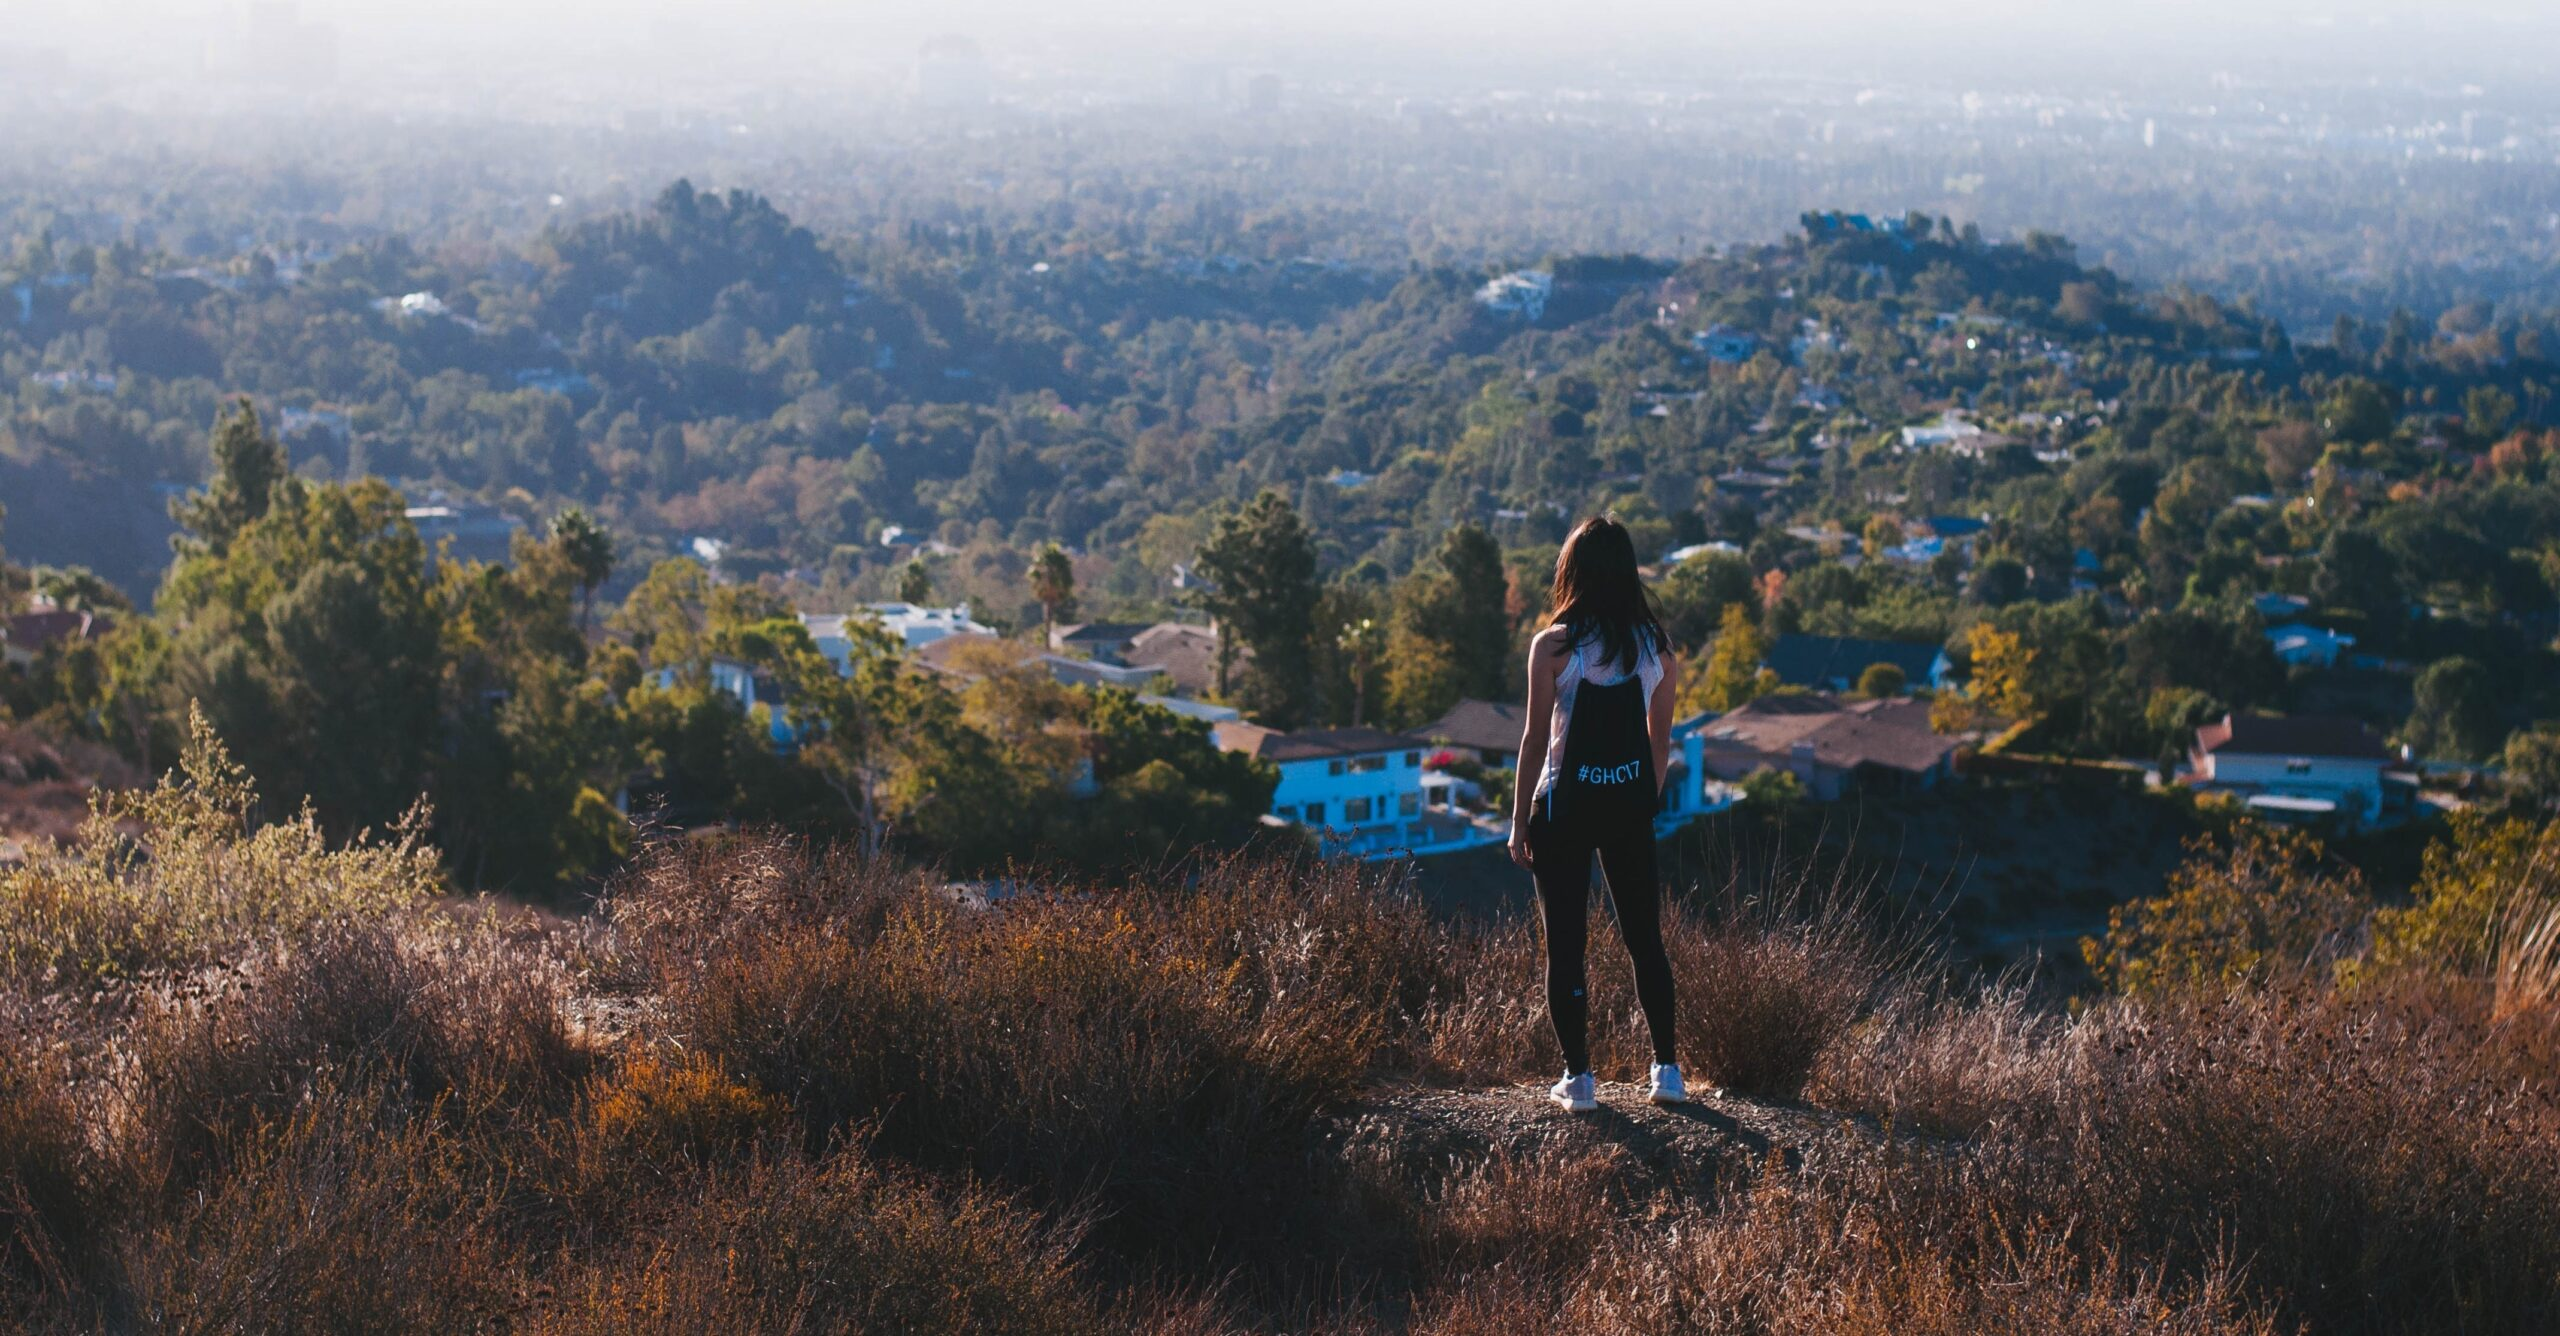 Add These Los Angeles Hikes to Your To-Do List